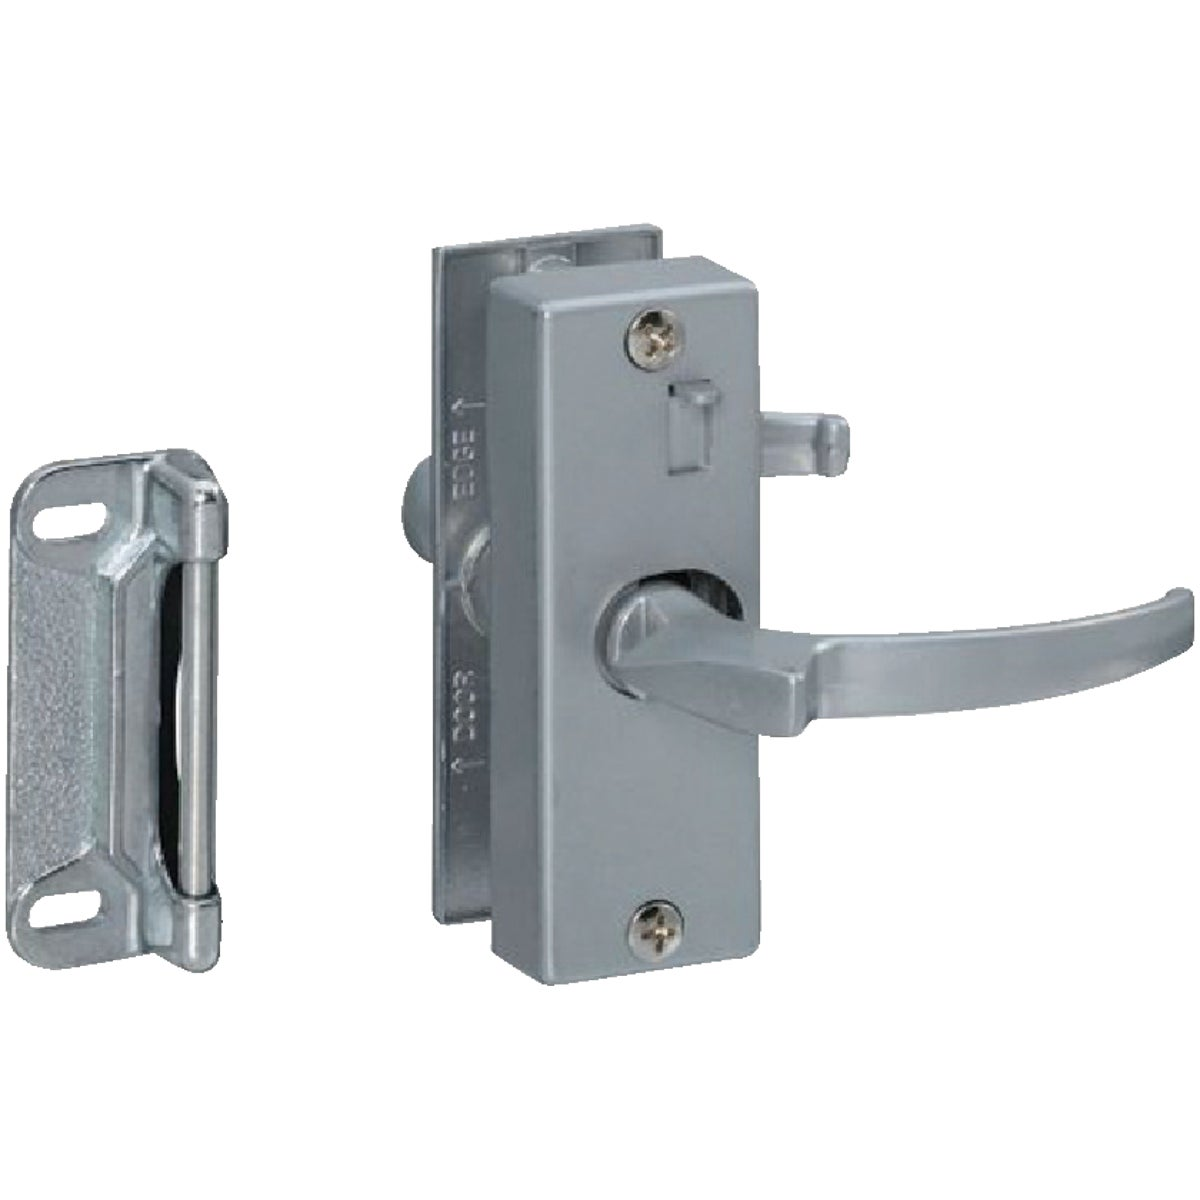 ALUM SCREEN DOOR LATCH